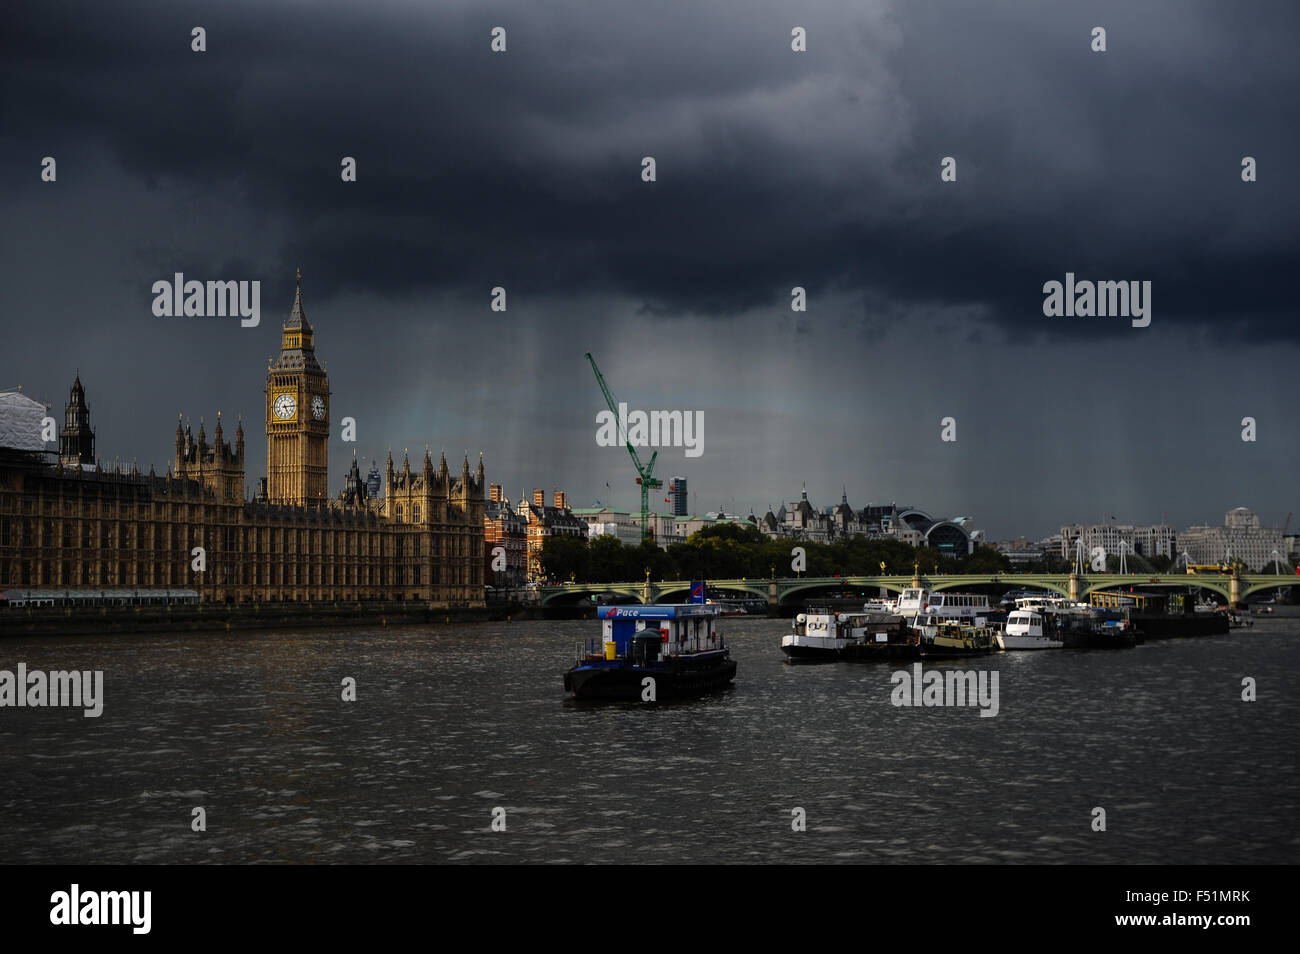 A view of House of Commons and the Thames as a dark cloud